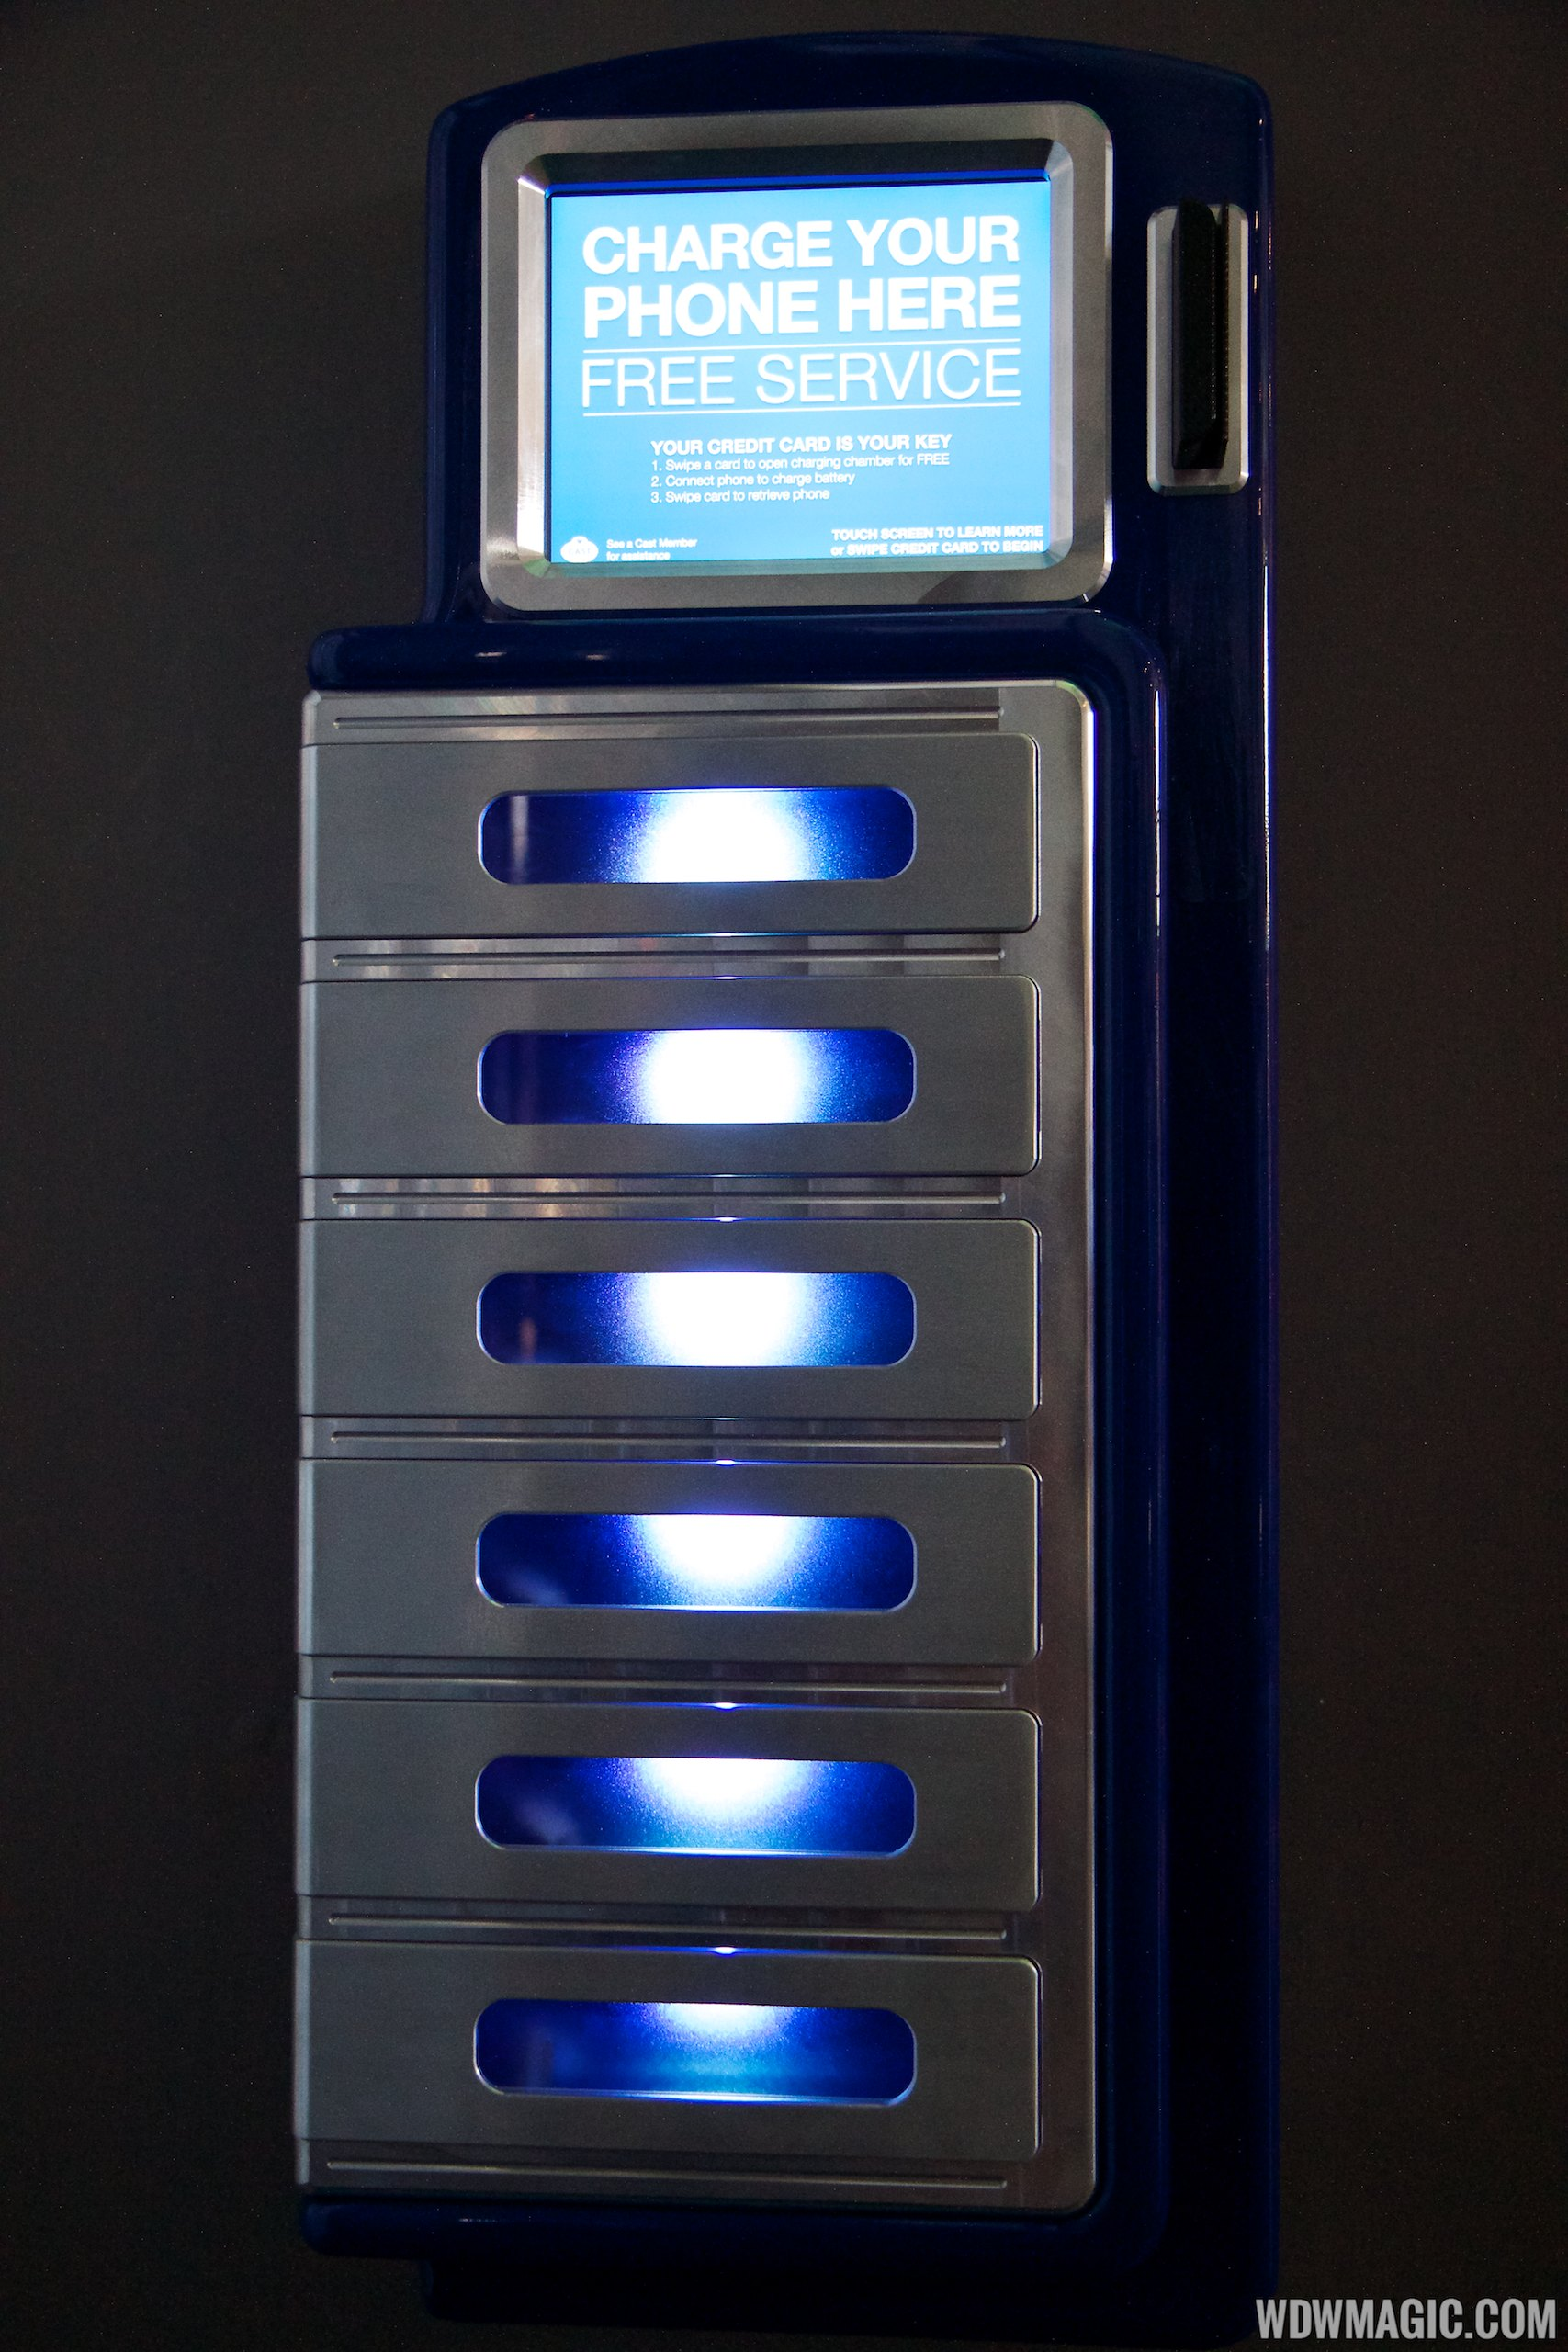 The charging lockers